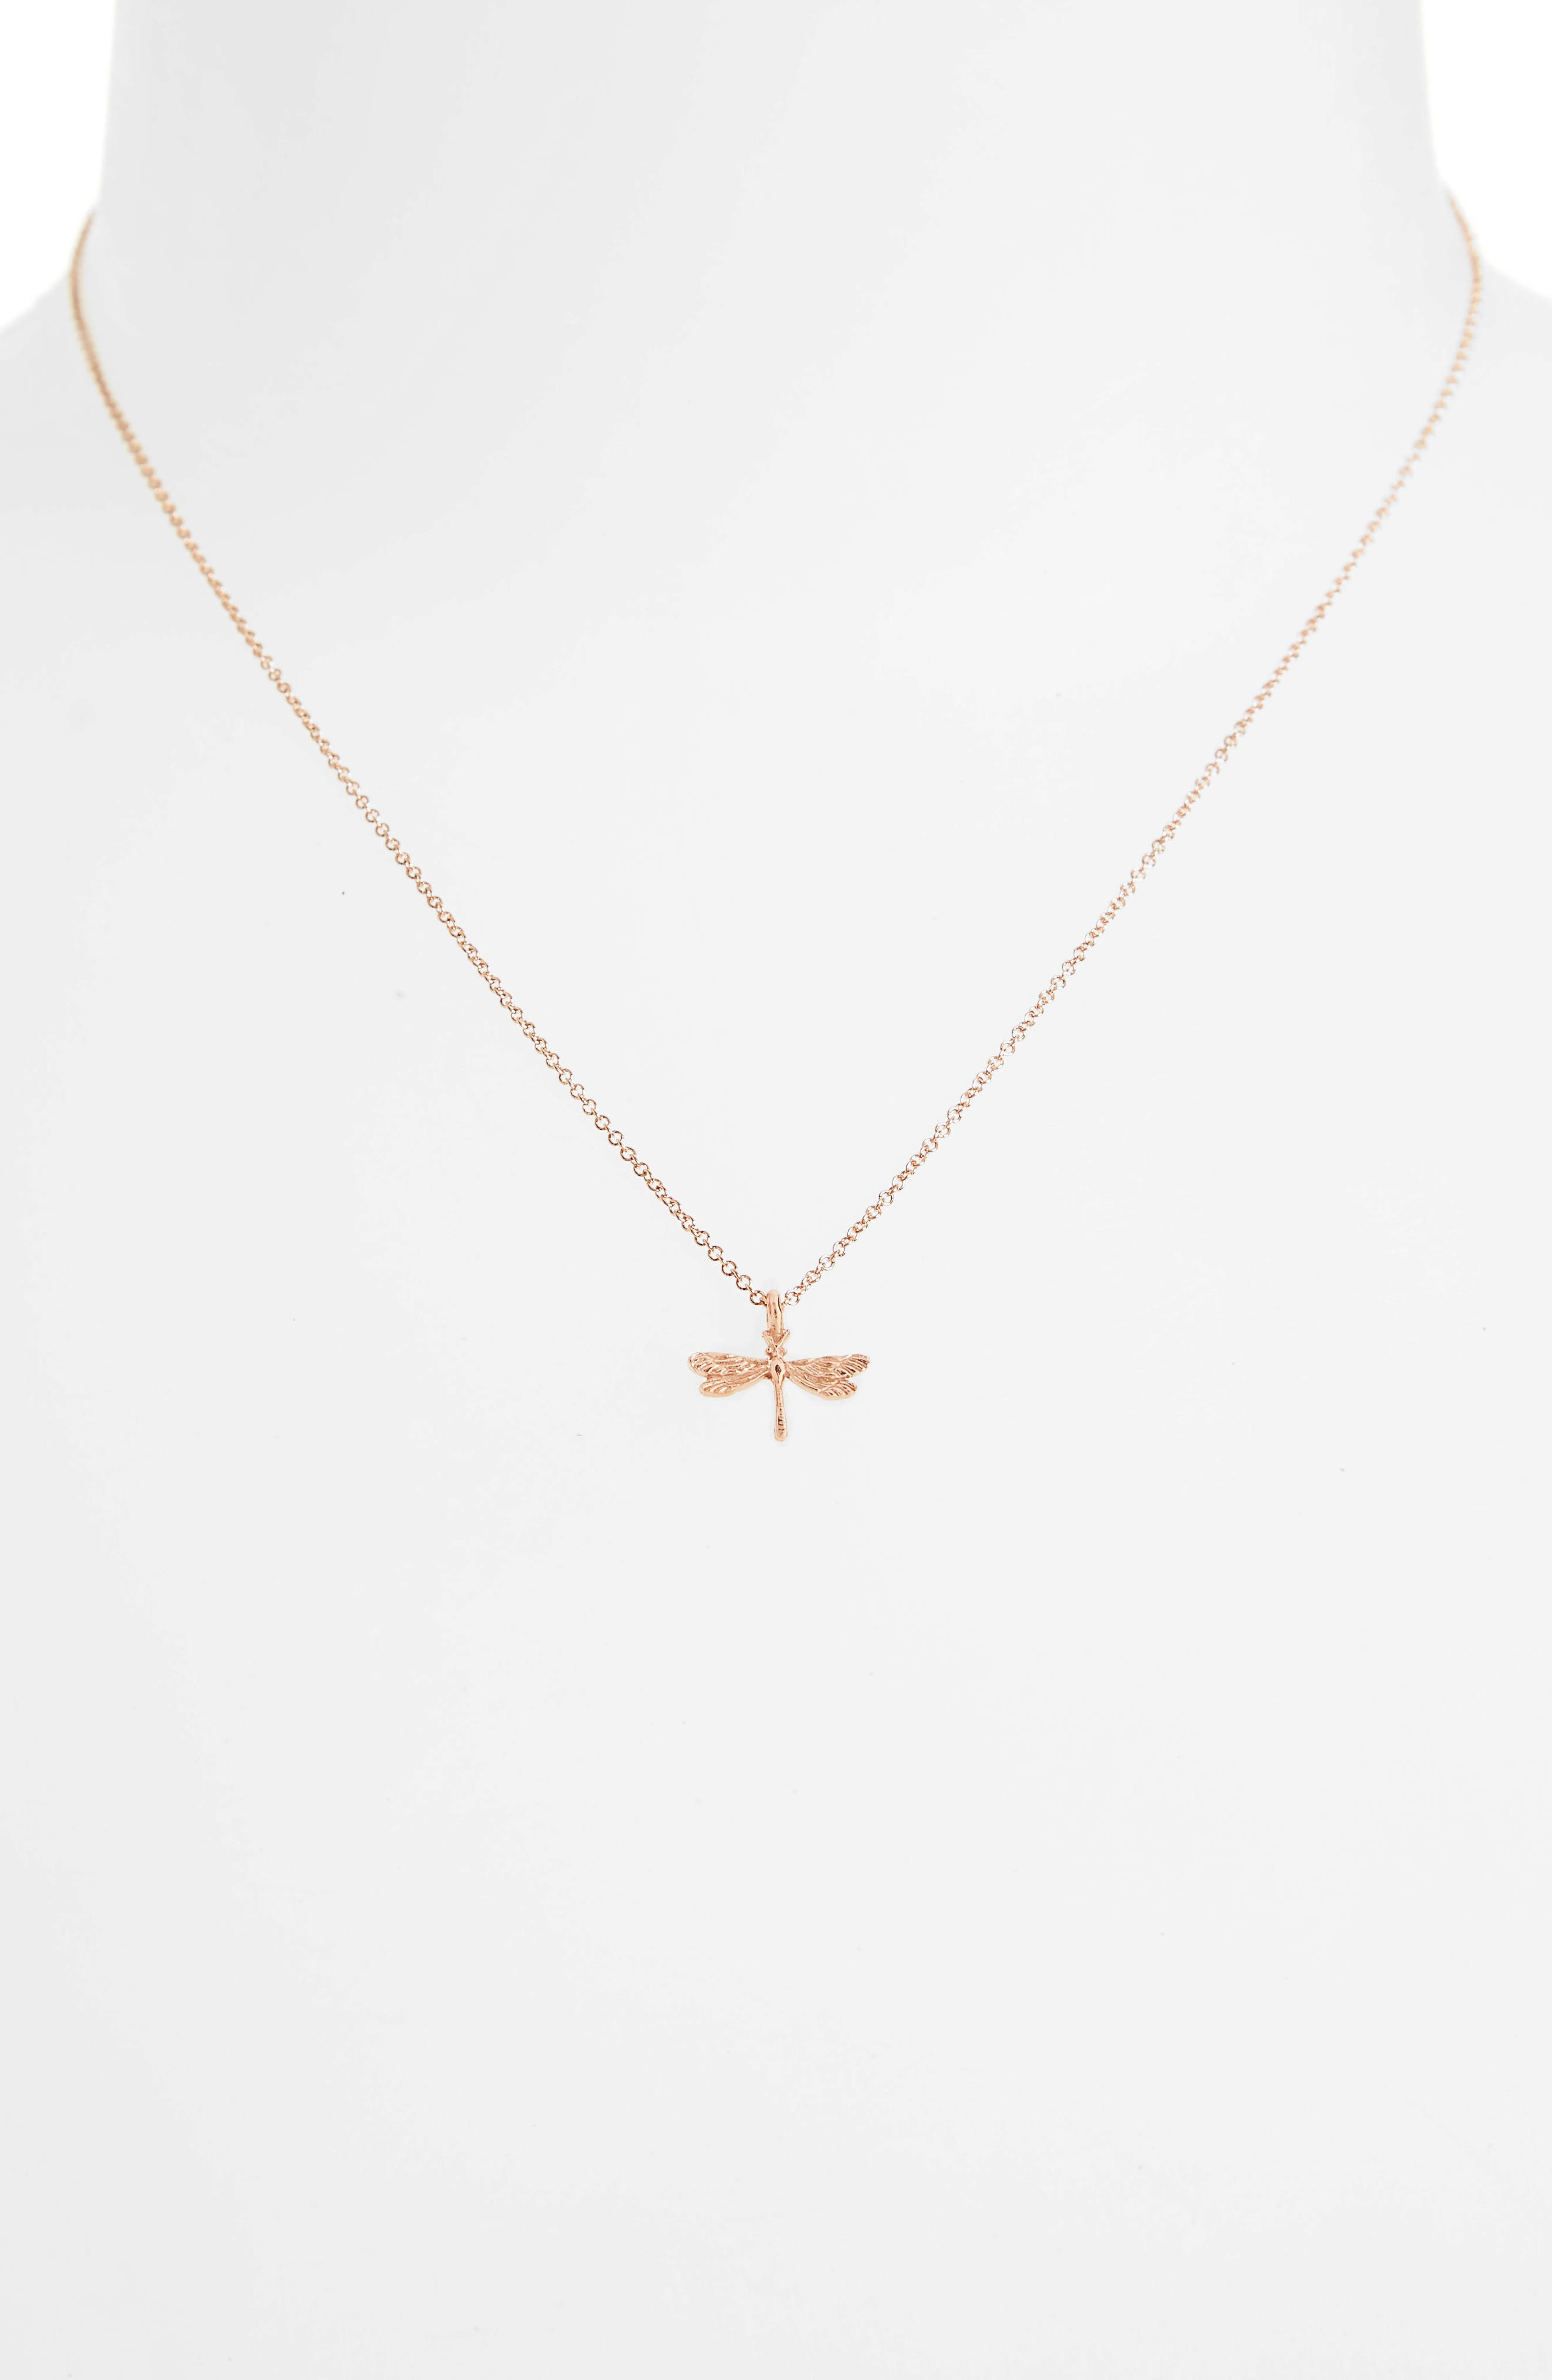 Friends Forever Dragonfly Pendant Necklace,                             Alternate thumbnail 2, color,                             650